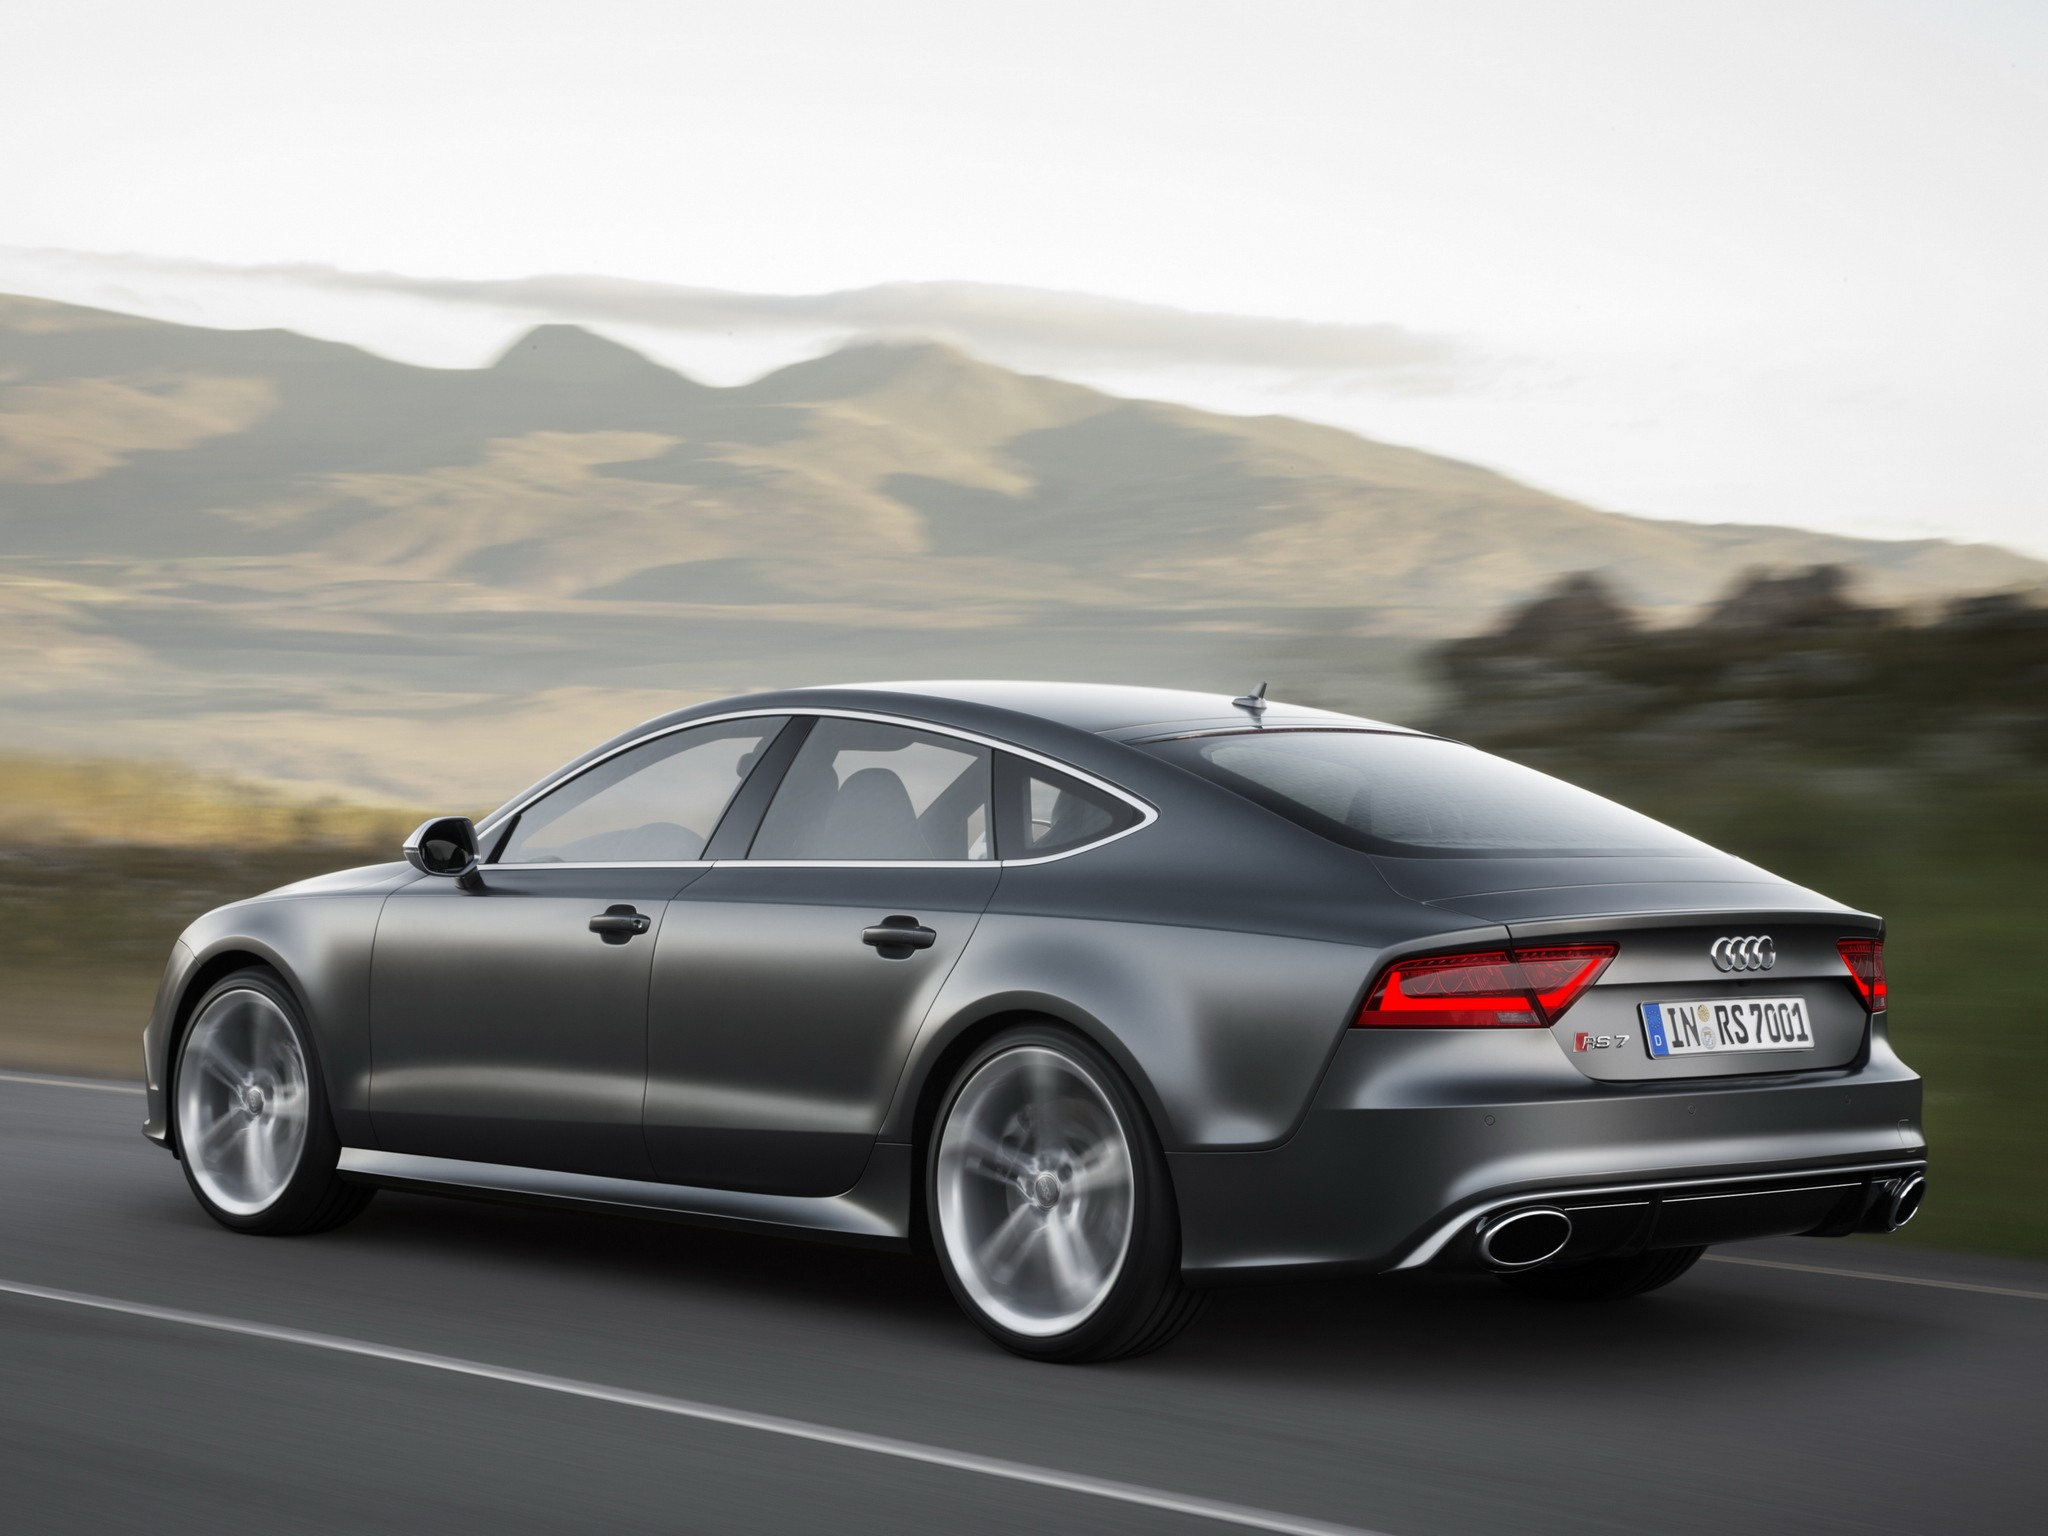 audi rs7 specs new cars review. Black Bedroom Furniture Sets. Home Design Ideas